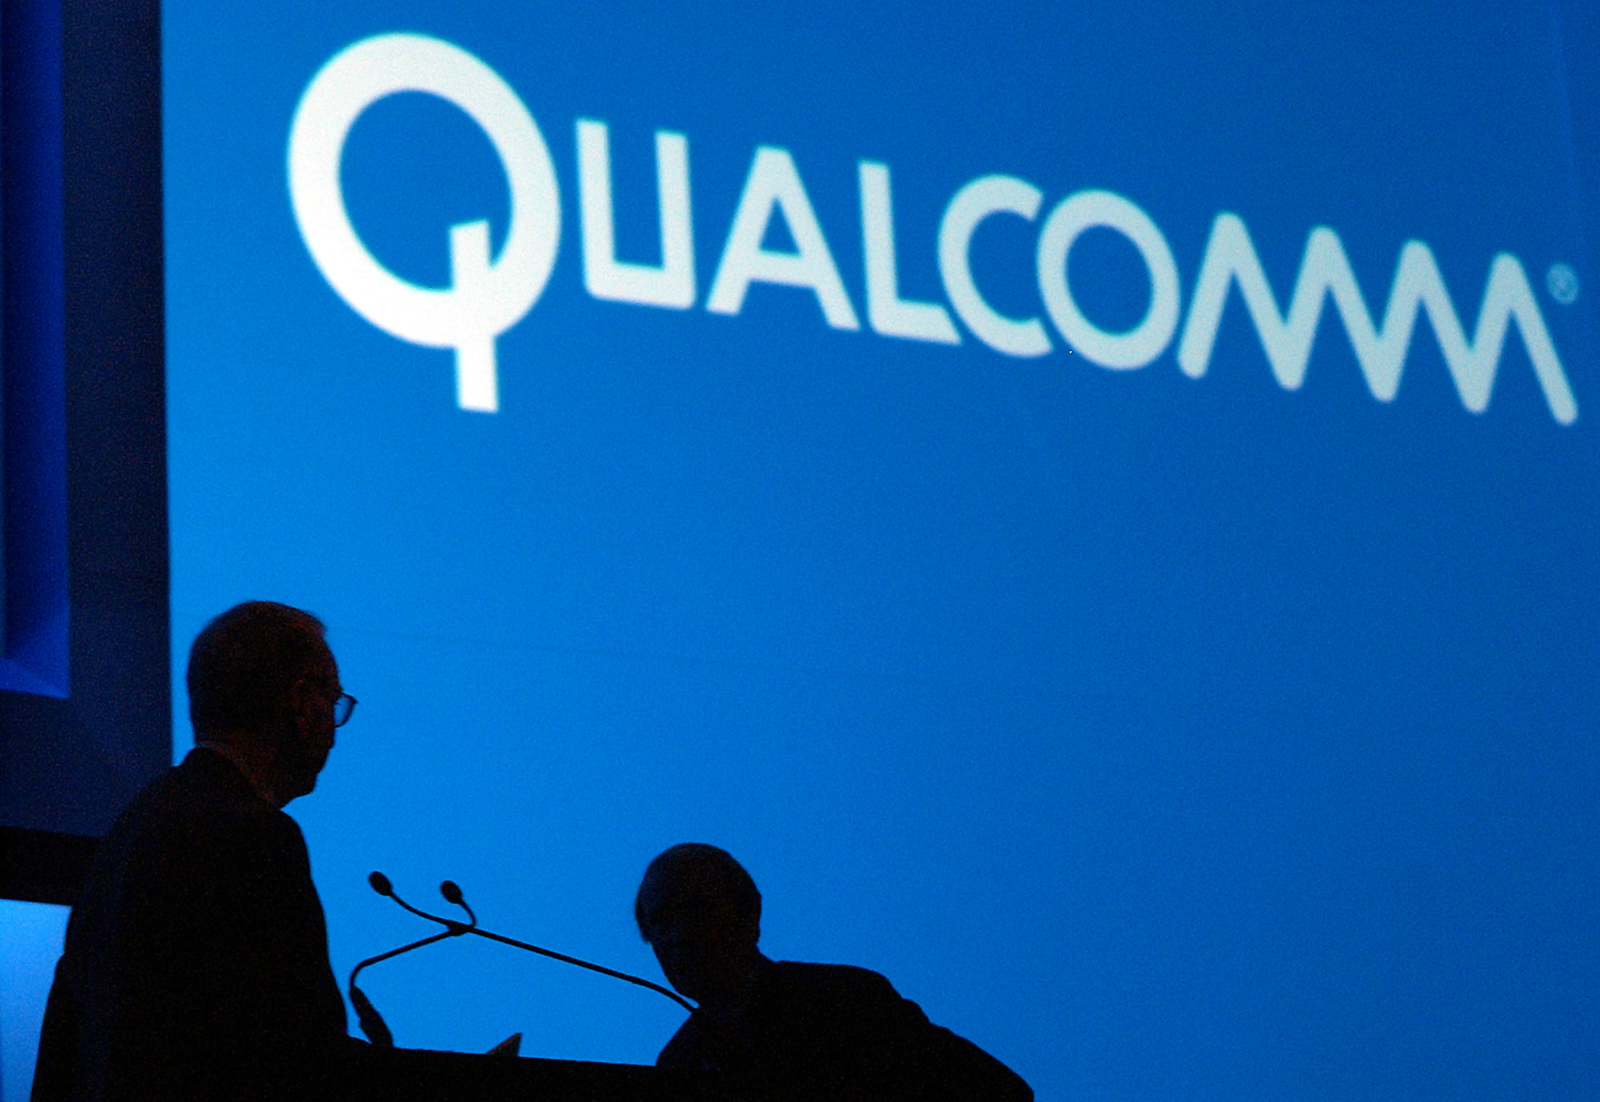 Qualcomm Antitrust Probe Apple iPhone